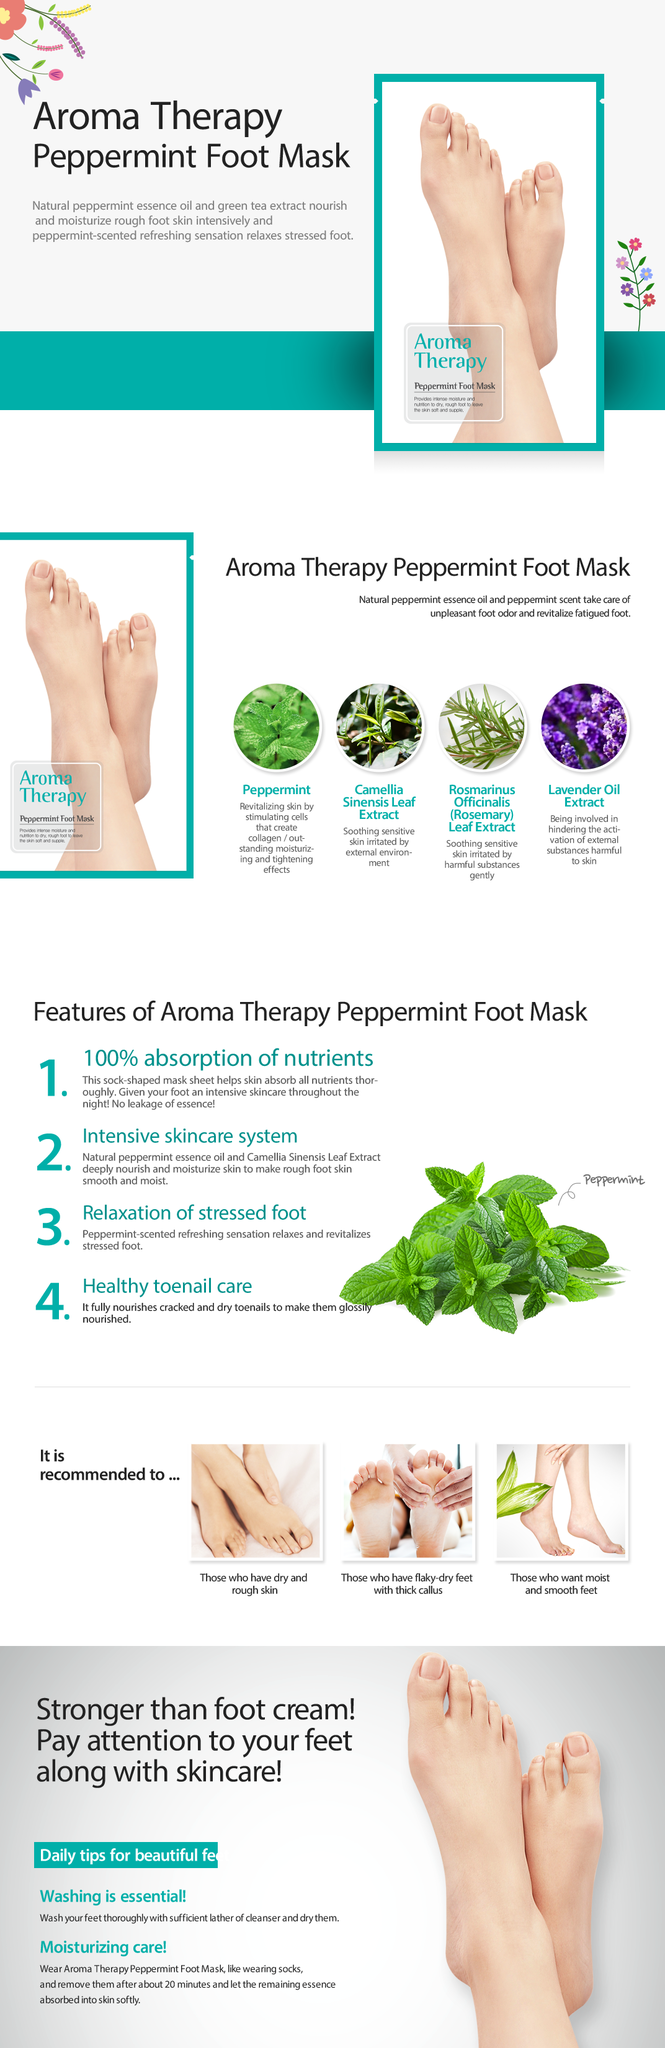 Aromatherapy Peppermint Foot Mask-2